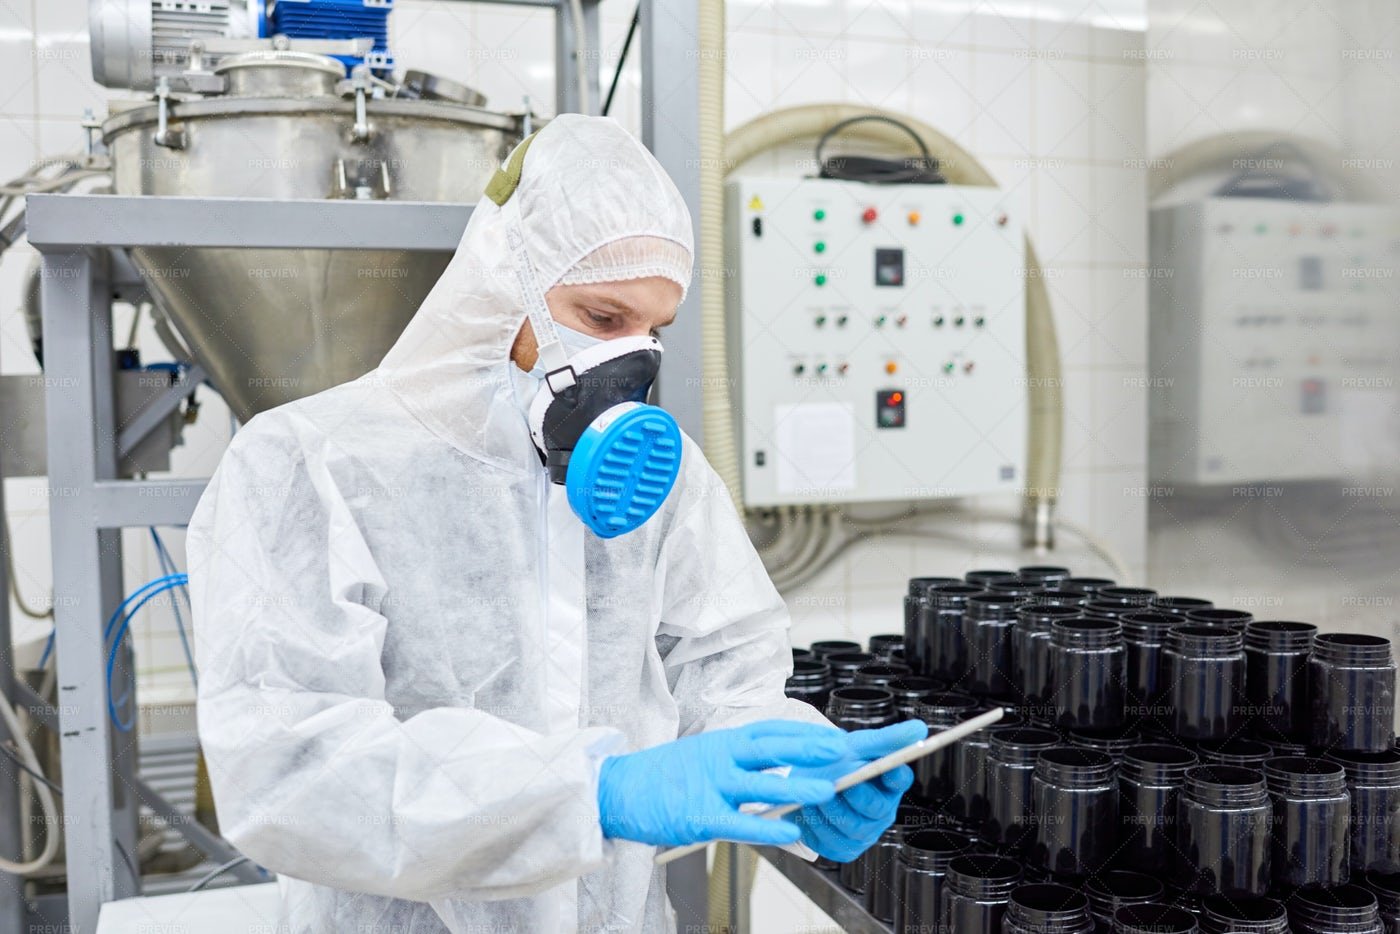 Taking Inventory In Pharmaceutical...: Stock Photos